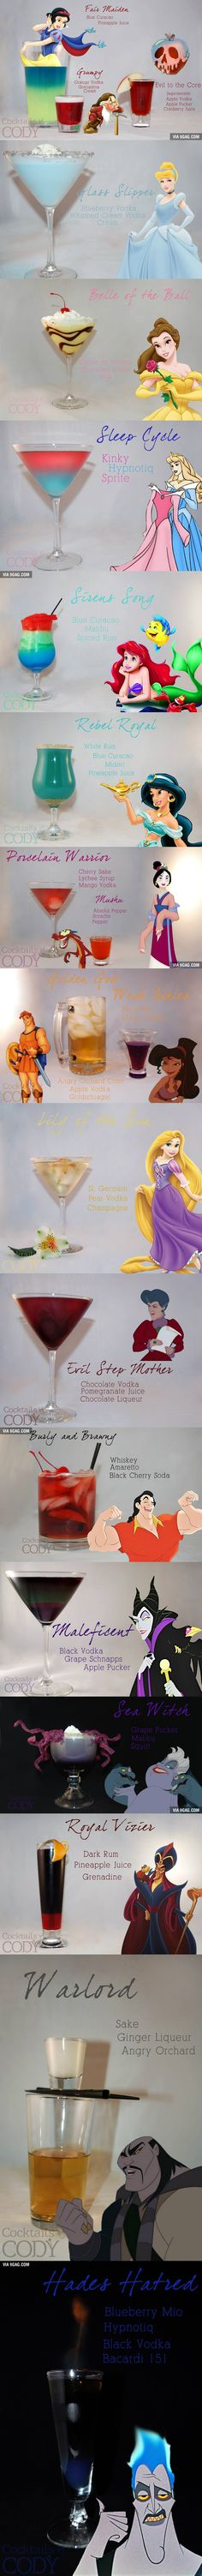 Cocktails by Cody